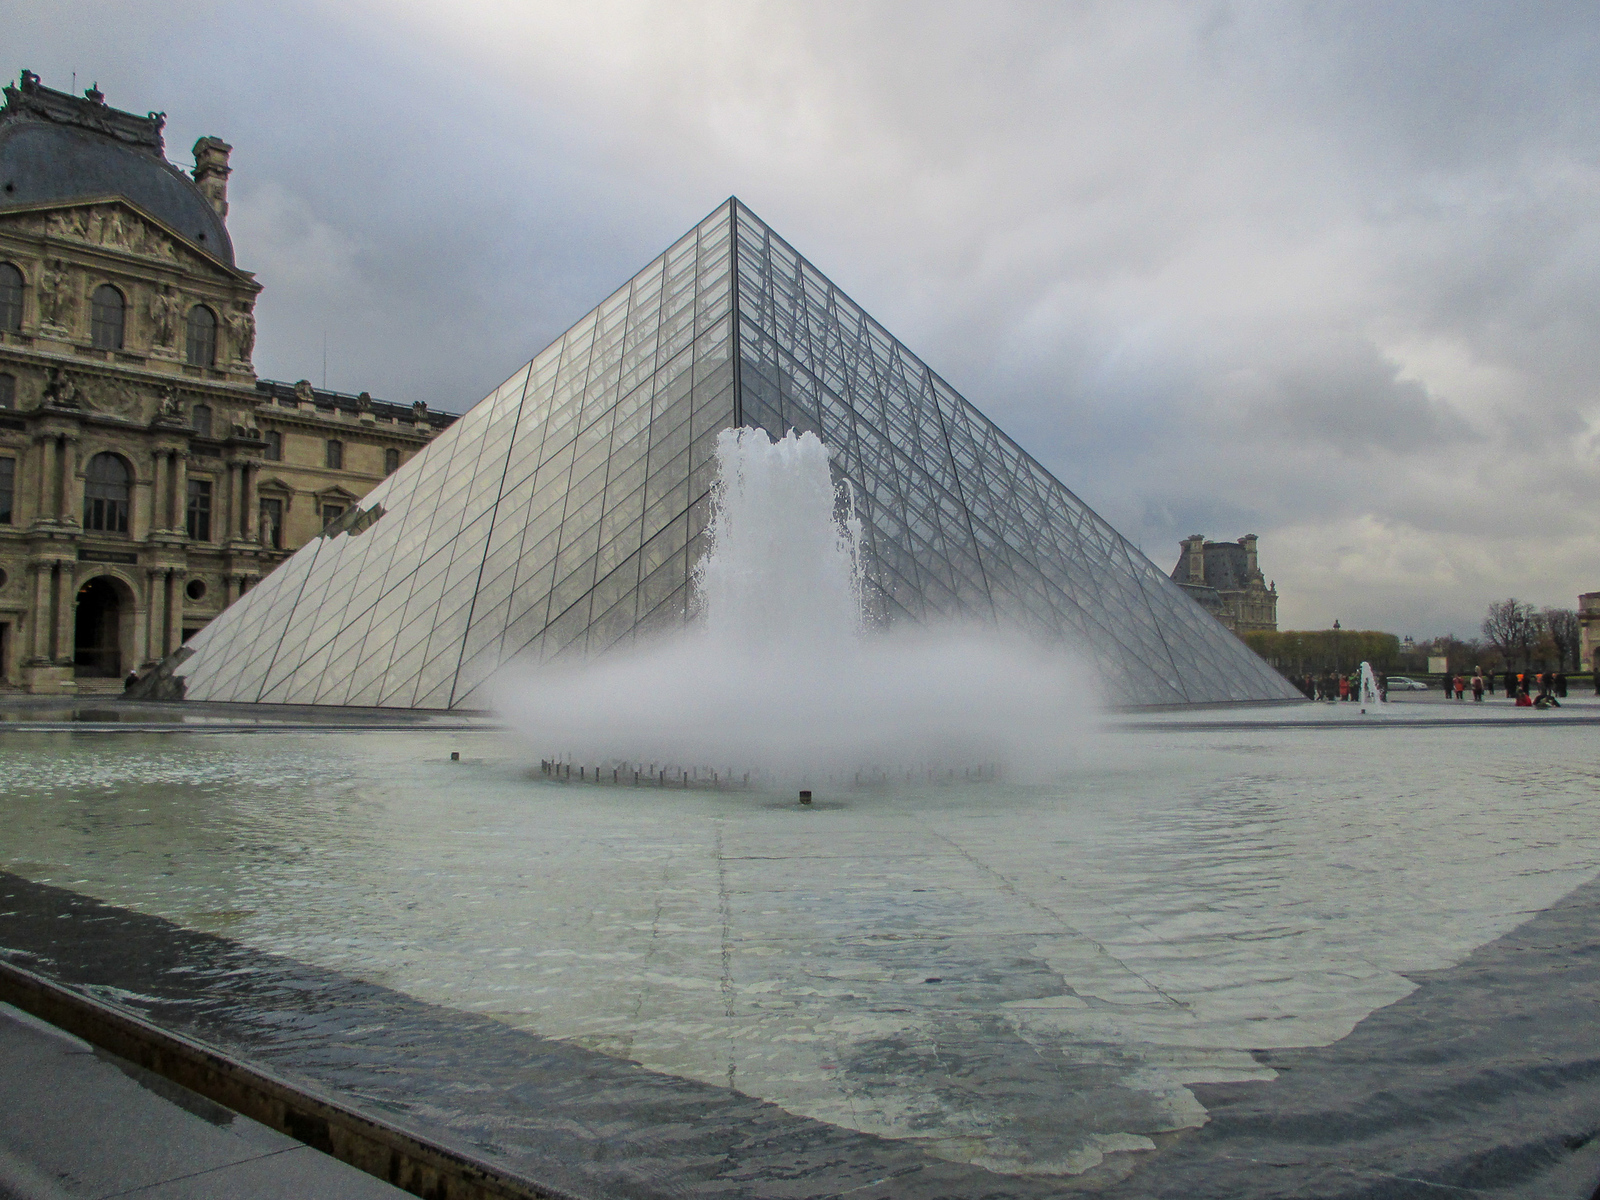 traveling in paris for the first time? you must go to the lourve